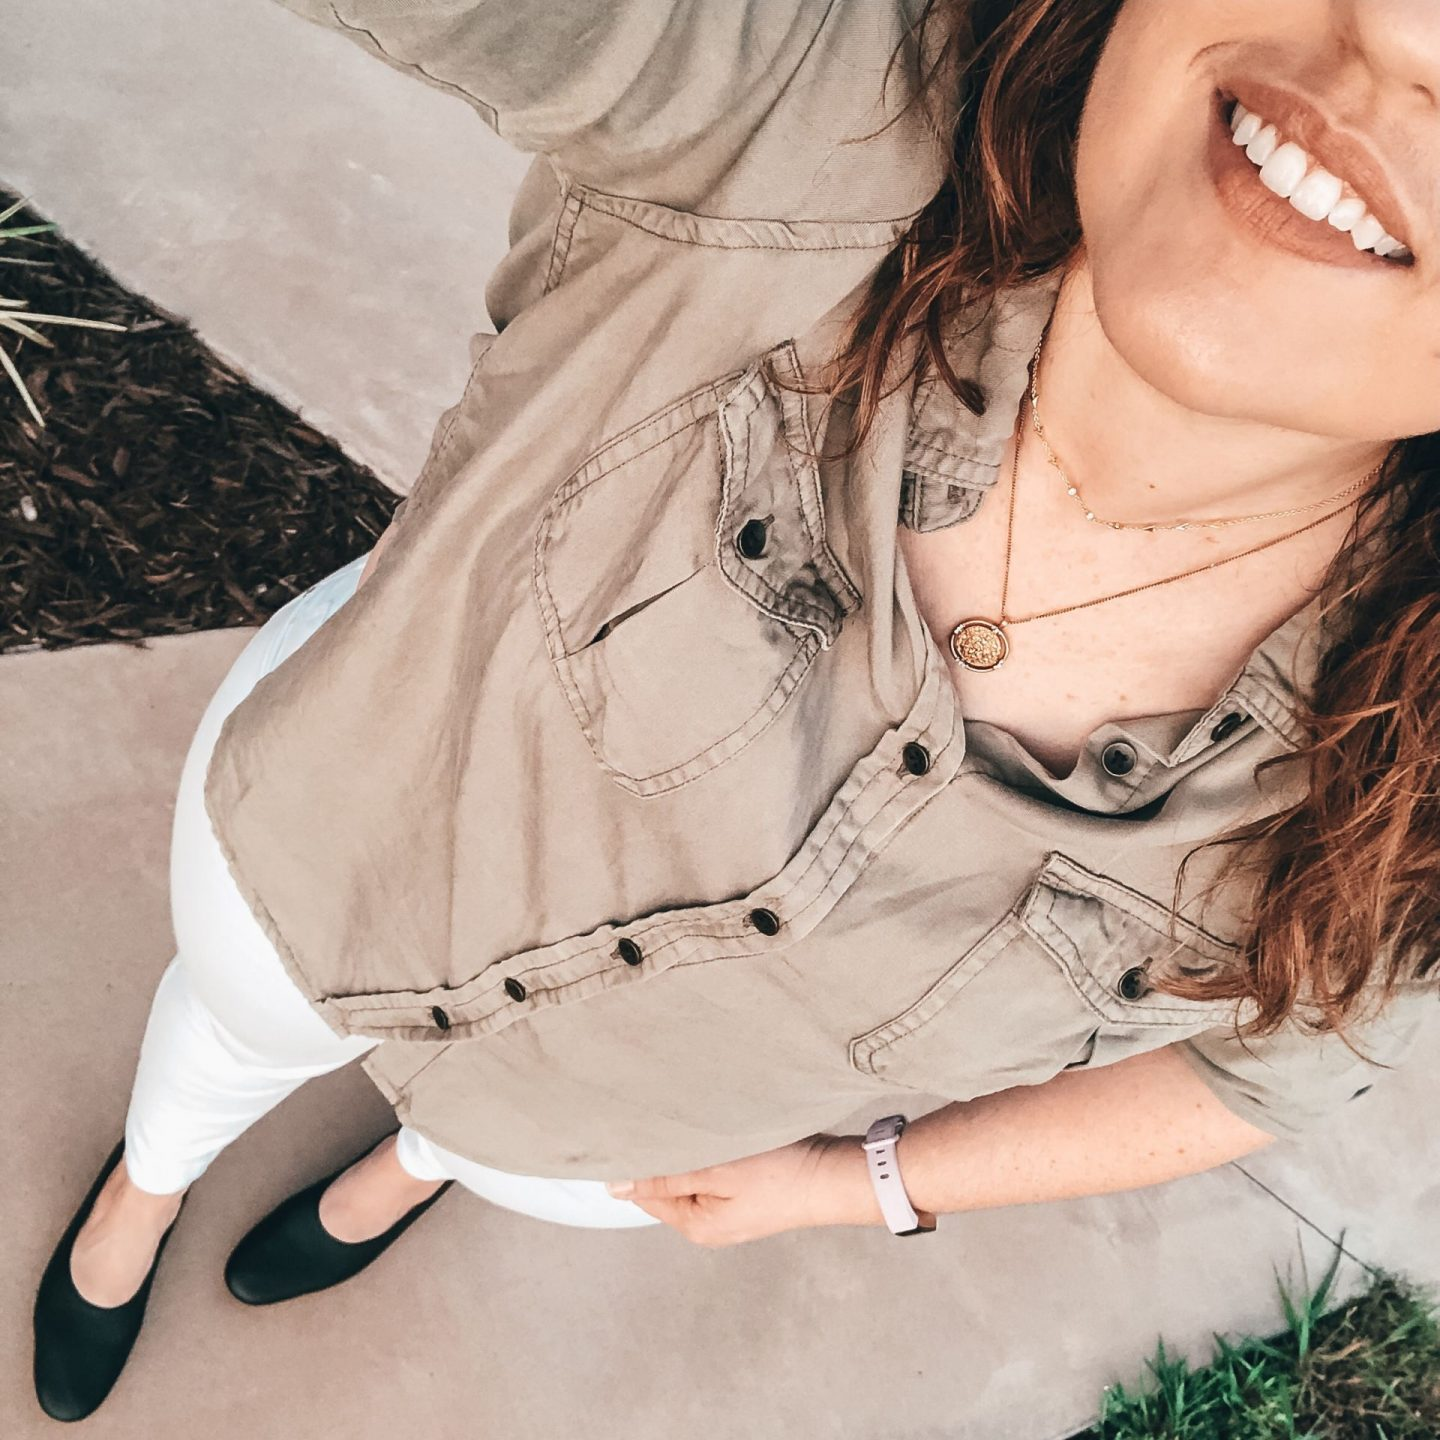 NC blogger Rebecca Lately shares her five recent summer outfits. If you love a minimal, remixable wardrobe, check this out for some inspiration!